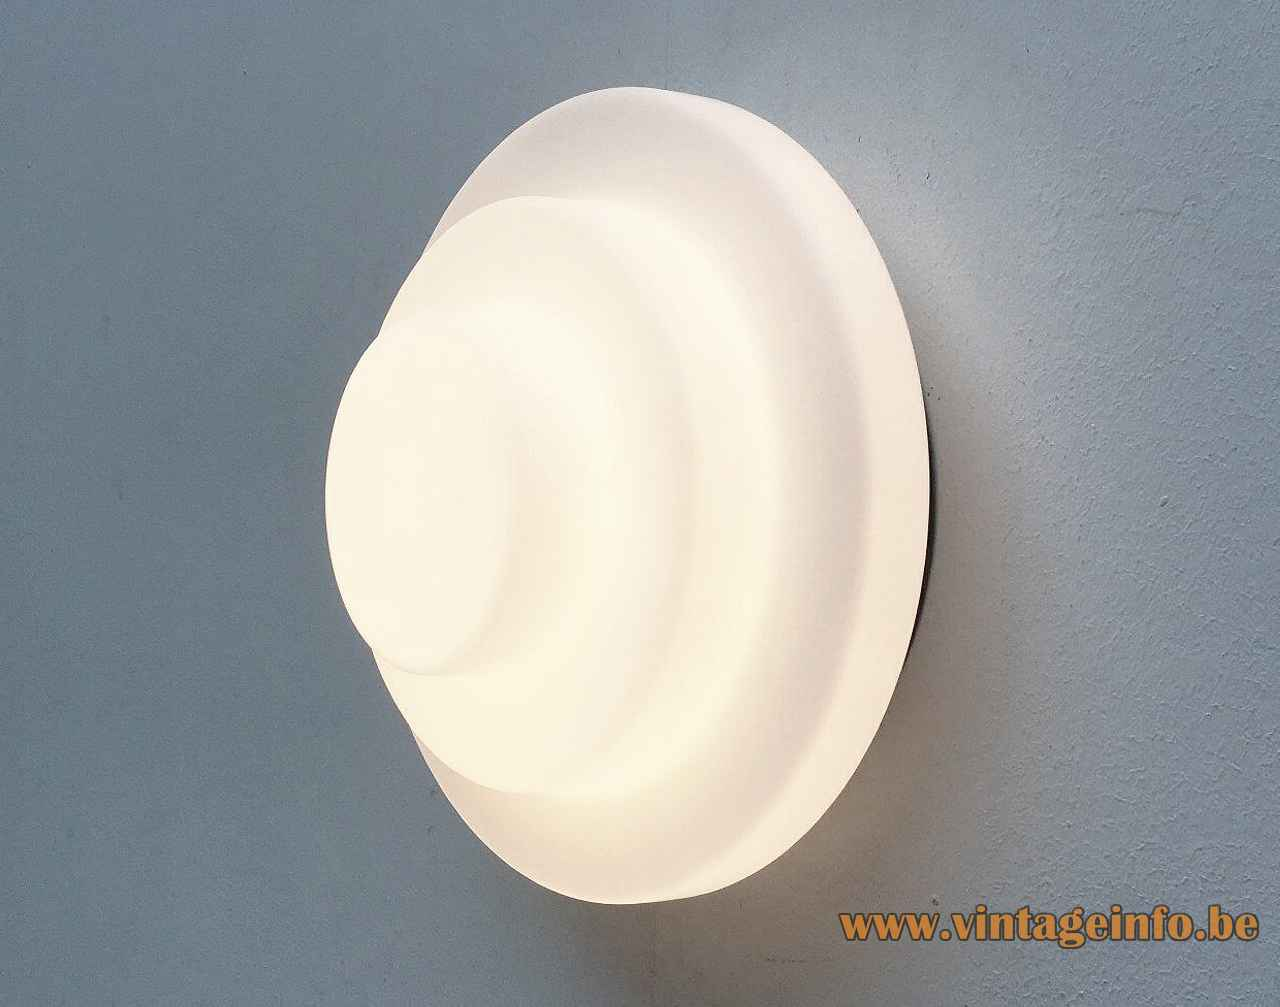 Raak Step By Step wall lamp flush mount round opal glass lampshade metal base 1980s E27 socket